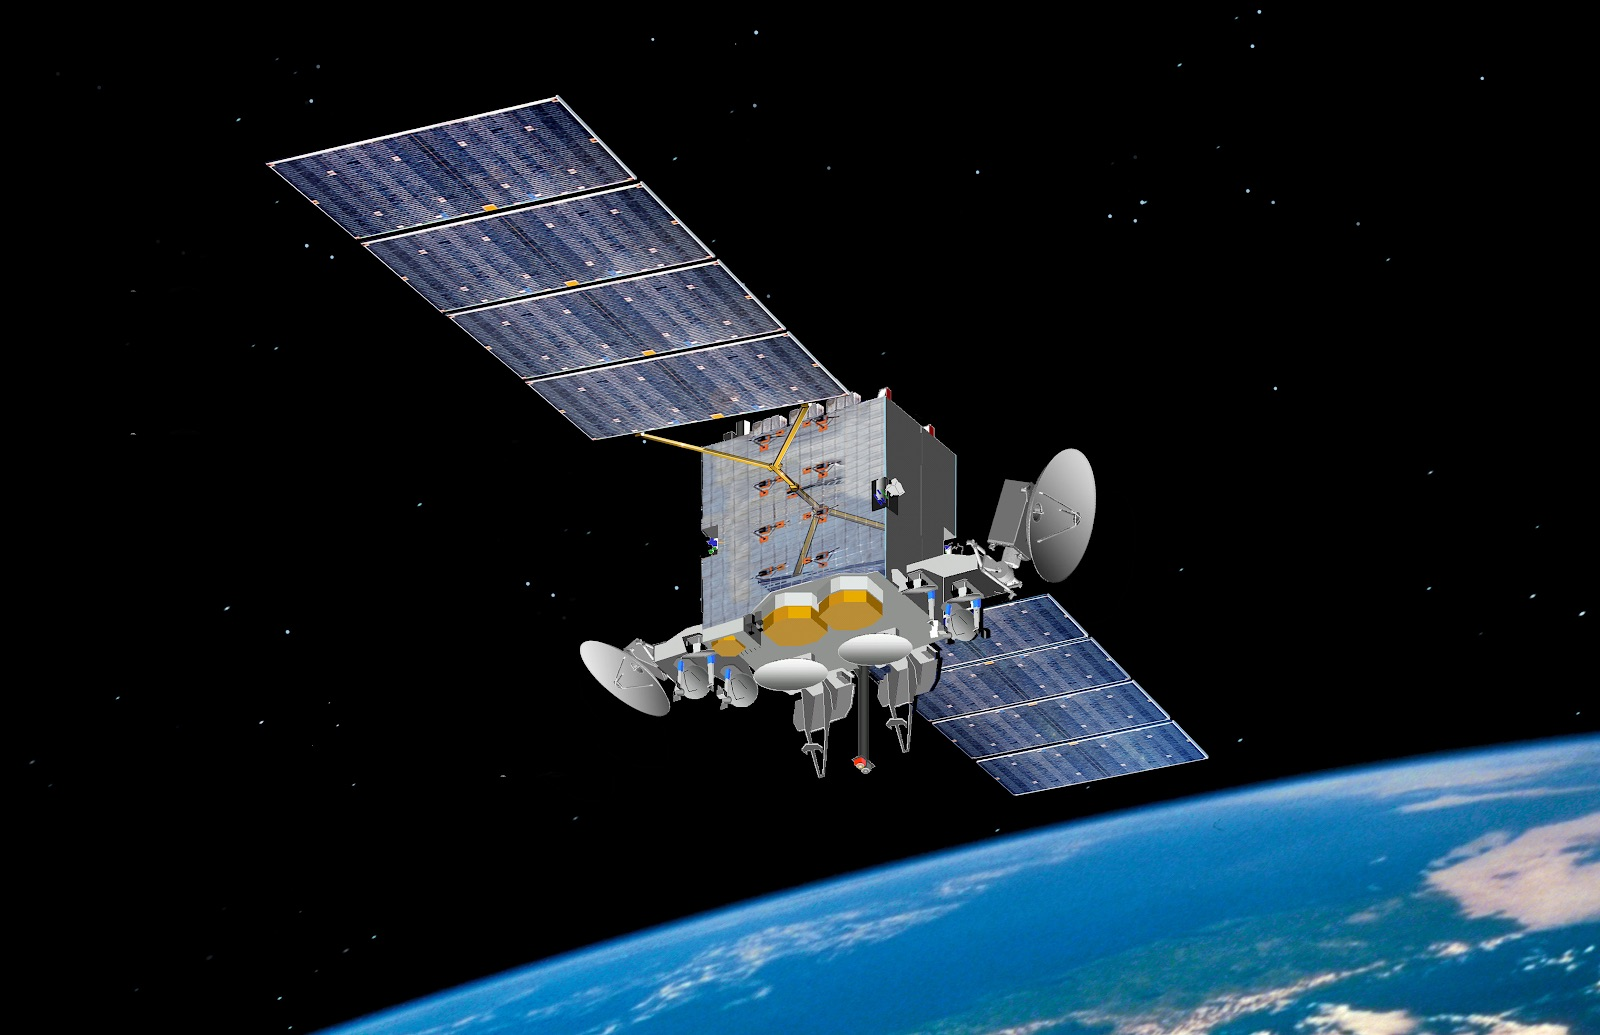 Pictured is an artist's rendering of the Advanced Extremely High Frequency satellite. AEHF-1 launched Aug. 14, 2010, and reached its operational geosynchronous earth orbit Oct. 24, 2011.